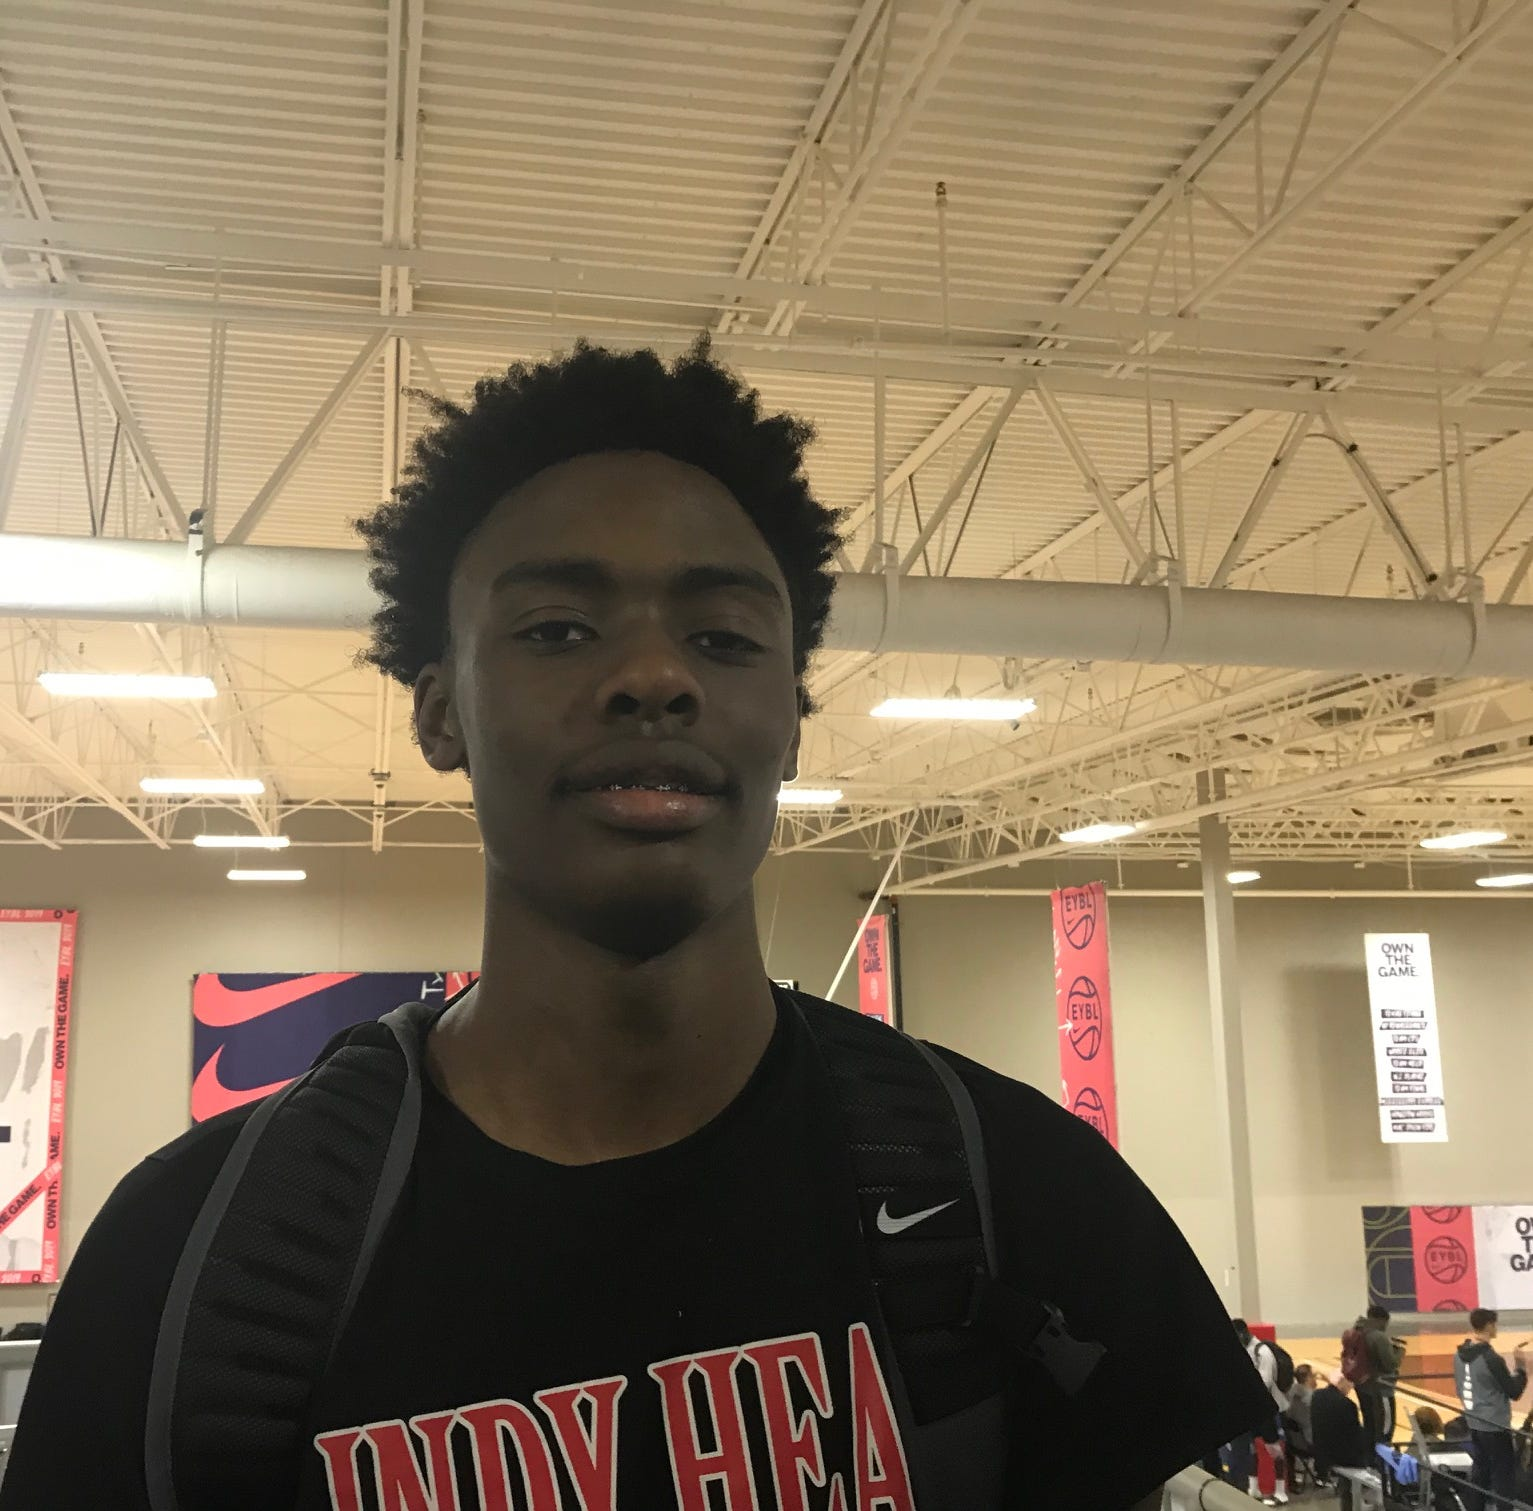 Kamari Lands impresses in EYBL game, awaits offers from IU and Louisville